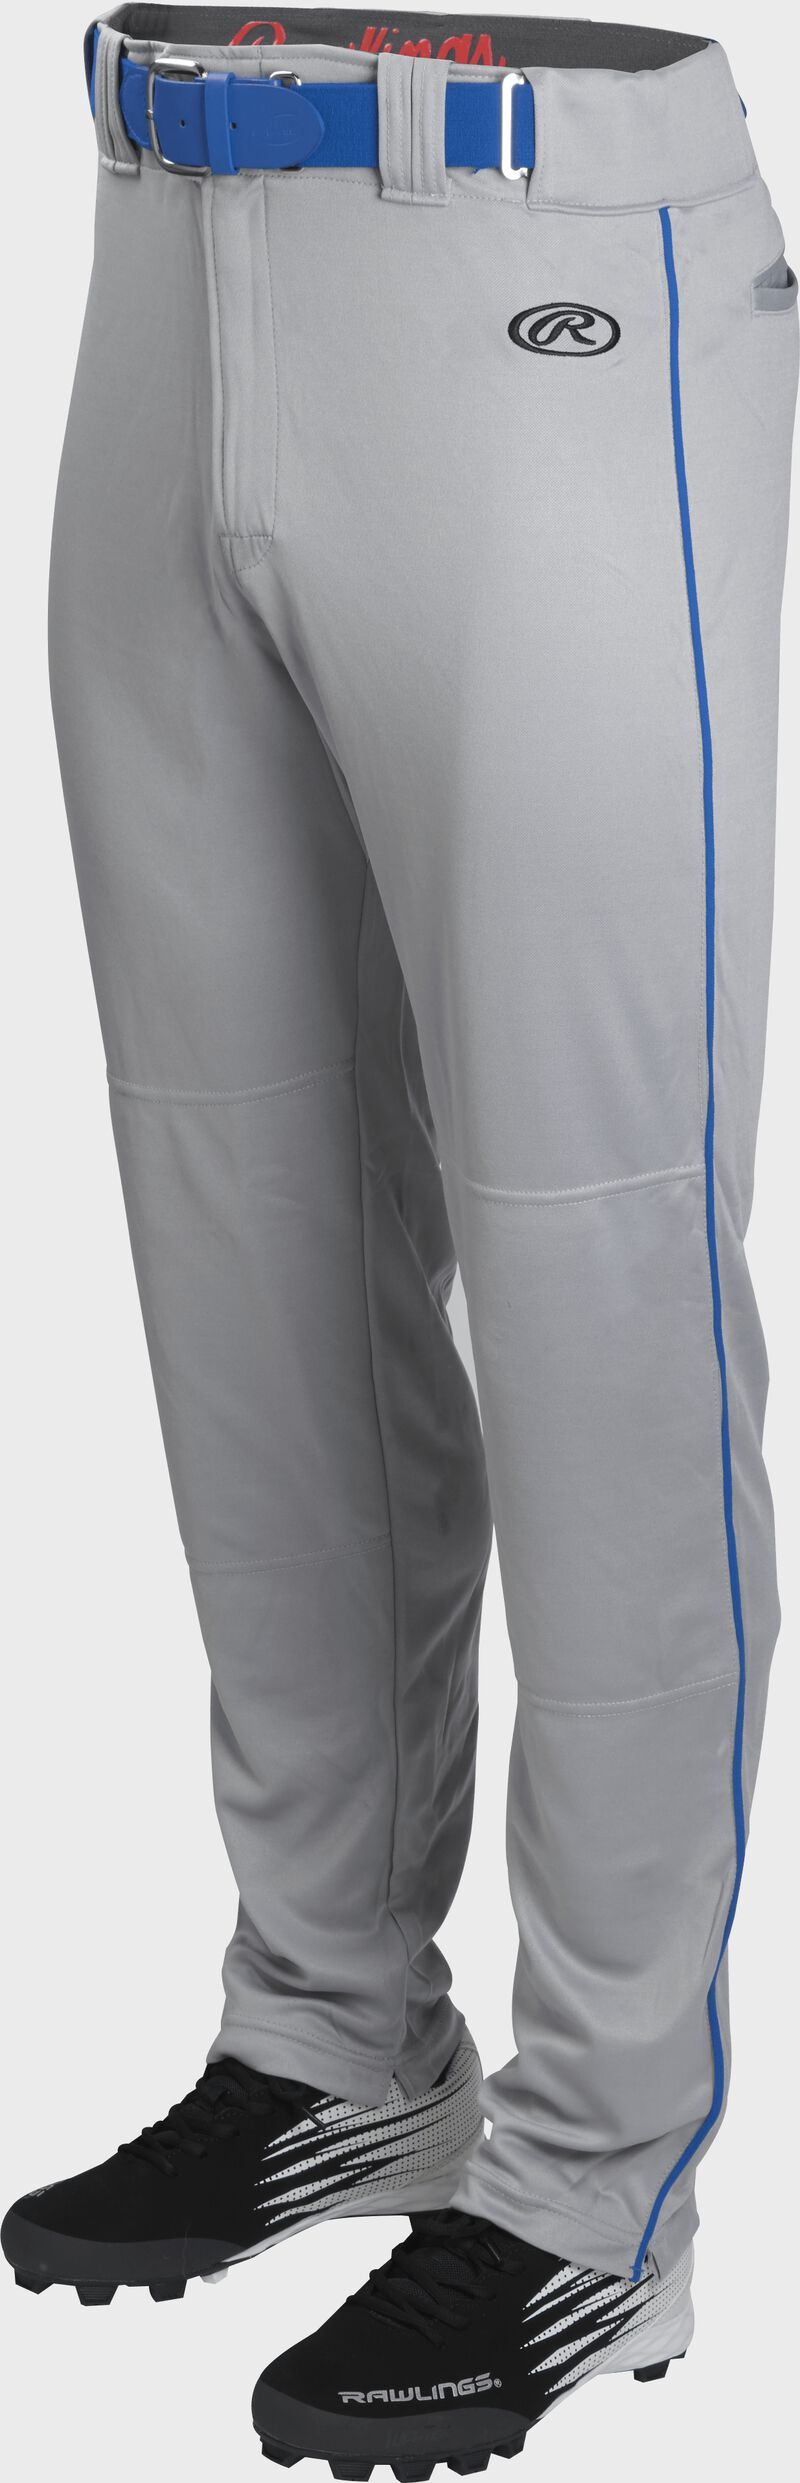 Front of Rawlings Blue Gray/Royal Adult Launch Piped Semi-Relaxed Baseball Pant - SKU #LNCHSRP-BG/R